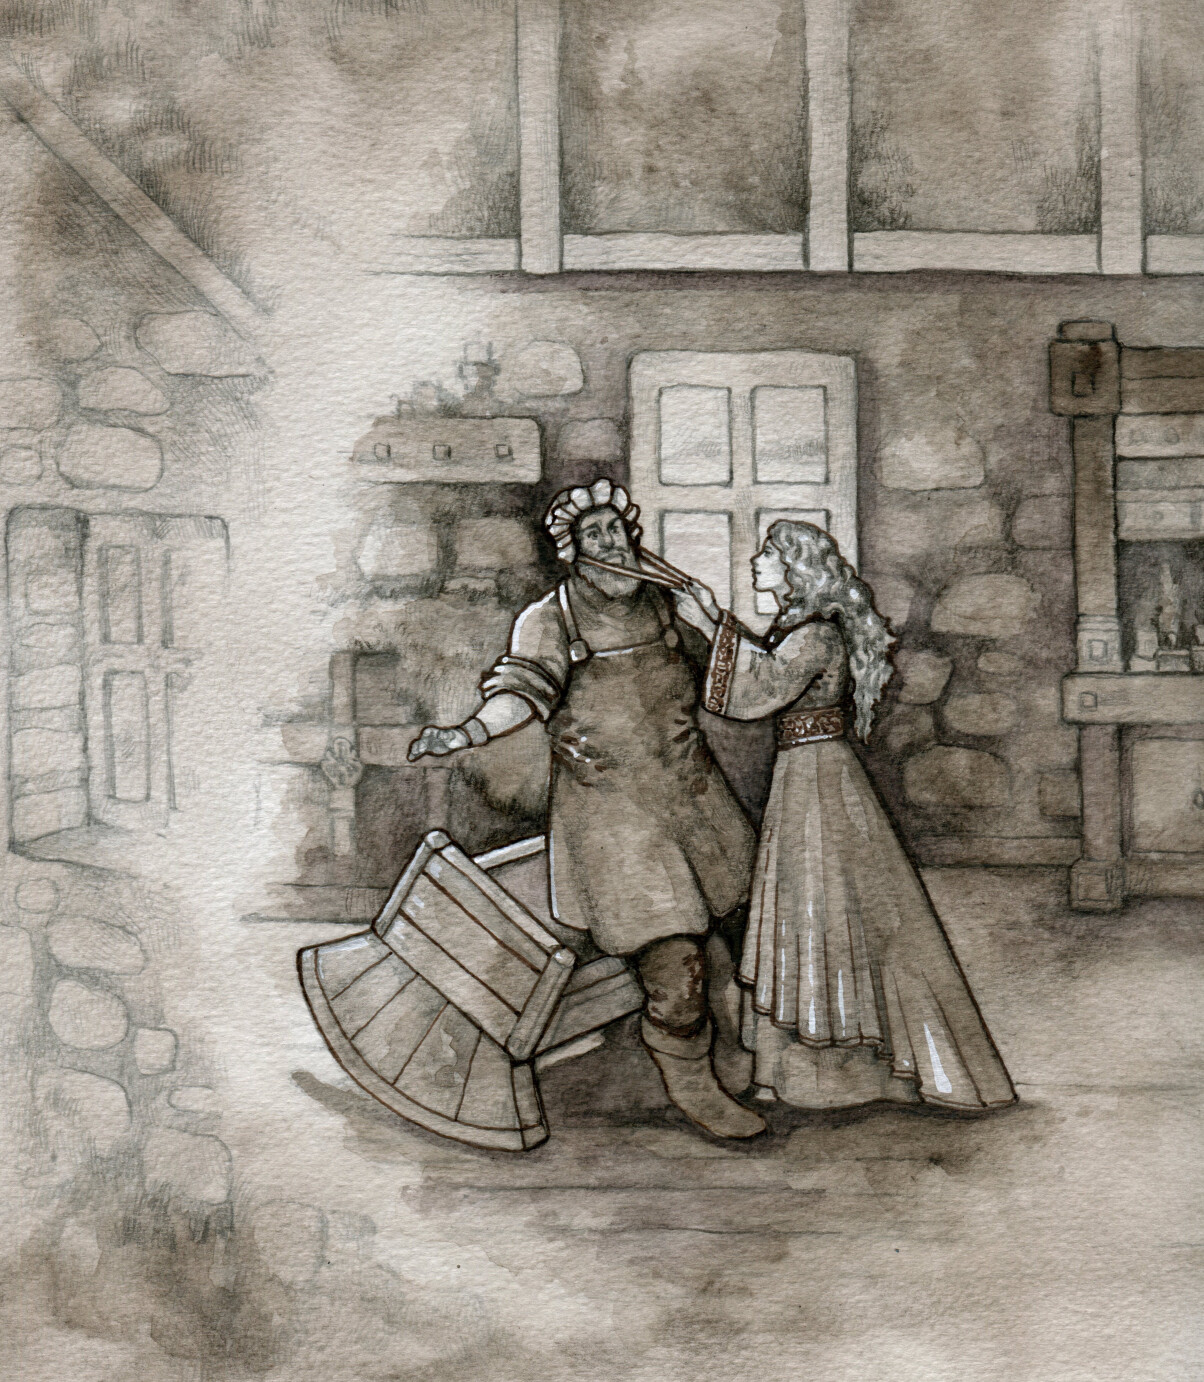 Fourth scene snippet: Fionn getting dressed as baby for the trick his wife constructed to scare Benanndonner away